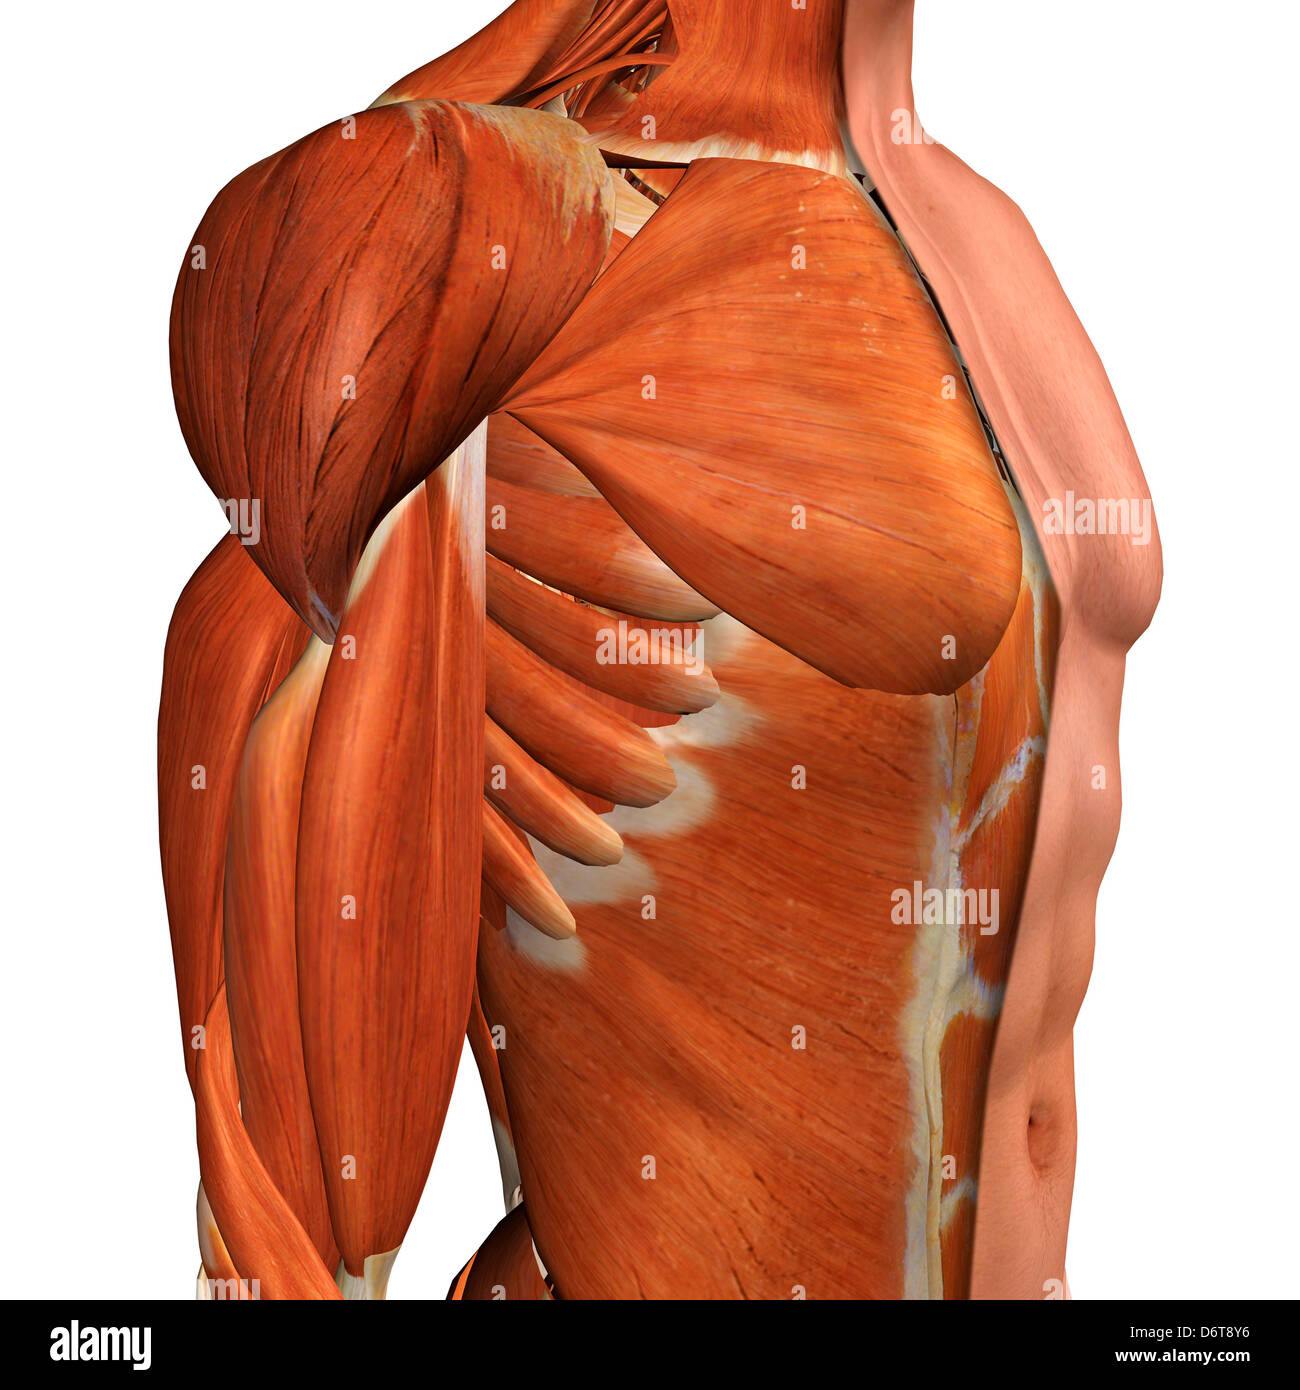 Cross Section Anatomy Of Male Chest Abdomen And Groin Muscles Stock